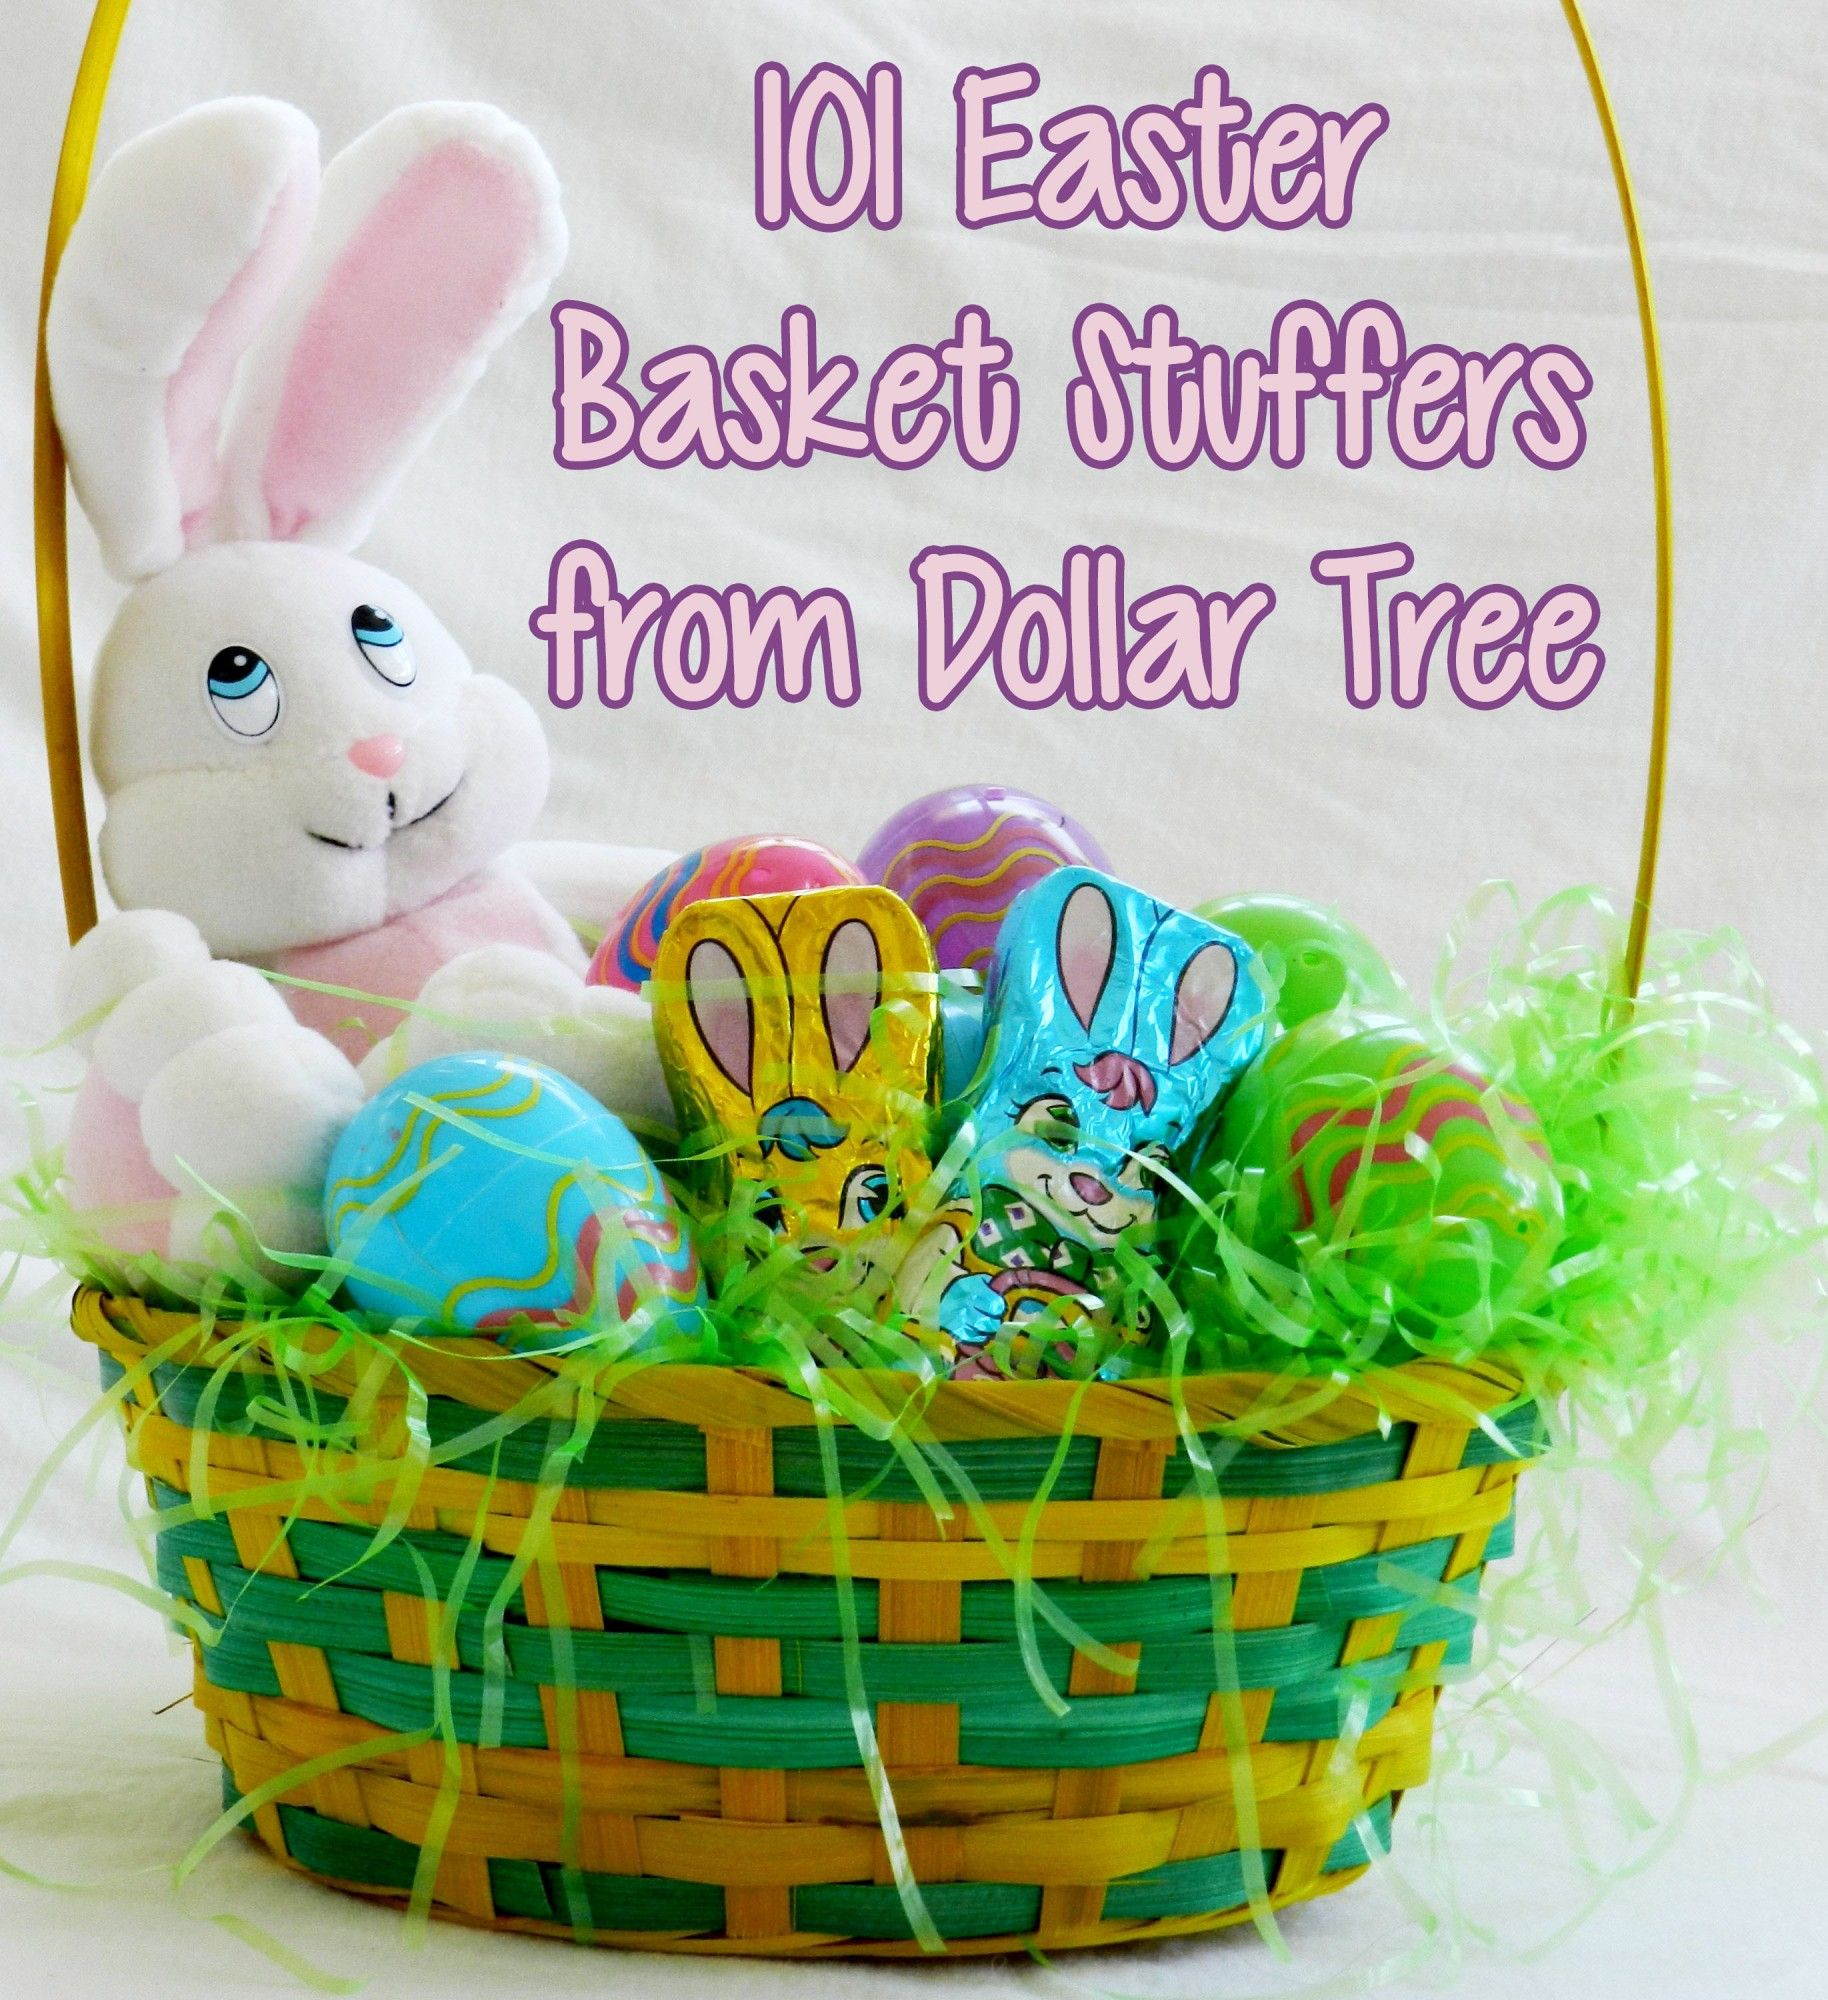 101 easter basket stuffer ideas from dollar tree fill your 101 easter basket stuffer ideas from dollar tree fill your toddlers easter basket with cute negle Images